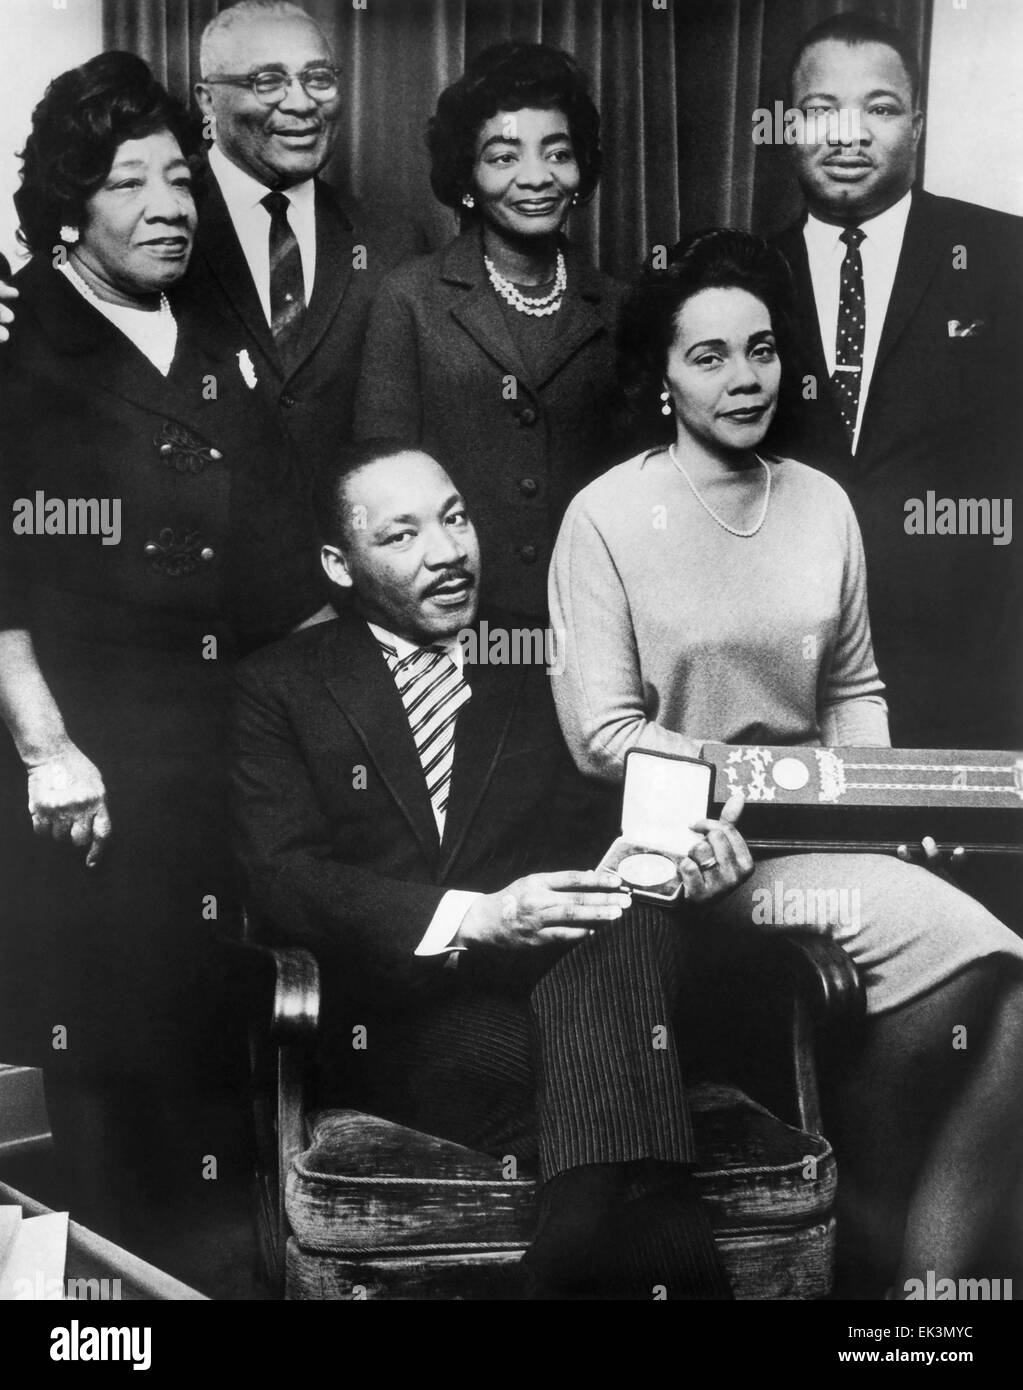 Martin Luther King, Jr., with Wife Coretta and Family, Accepting Nobel Peace Prize, 1964 Stock Photo